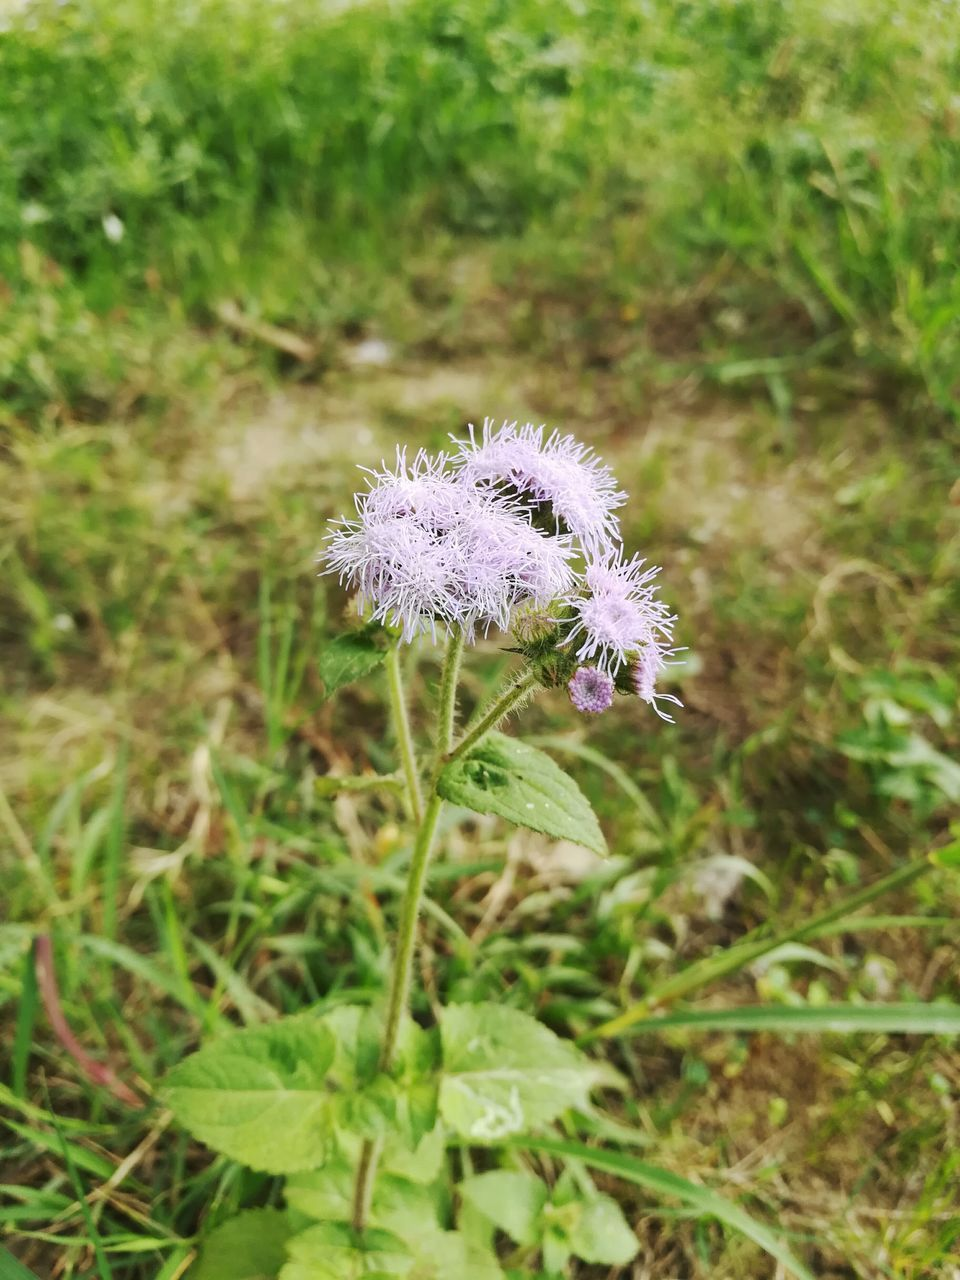 flower, nature, fragility, growth, plant, focus on foreground, green color, beauty in nature, day, flower head, purple, outdoors, field, no people, freshness, close-up, blooming